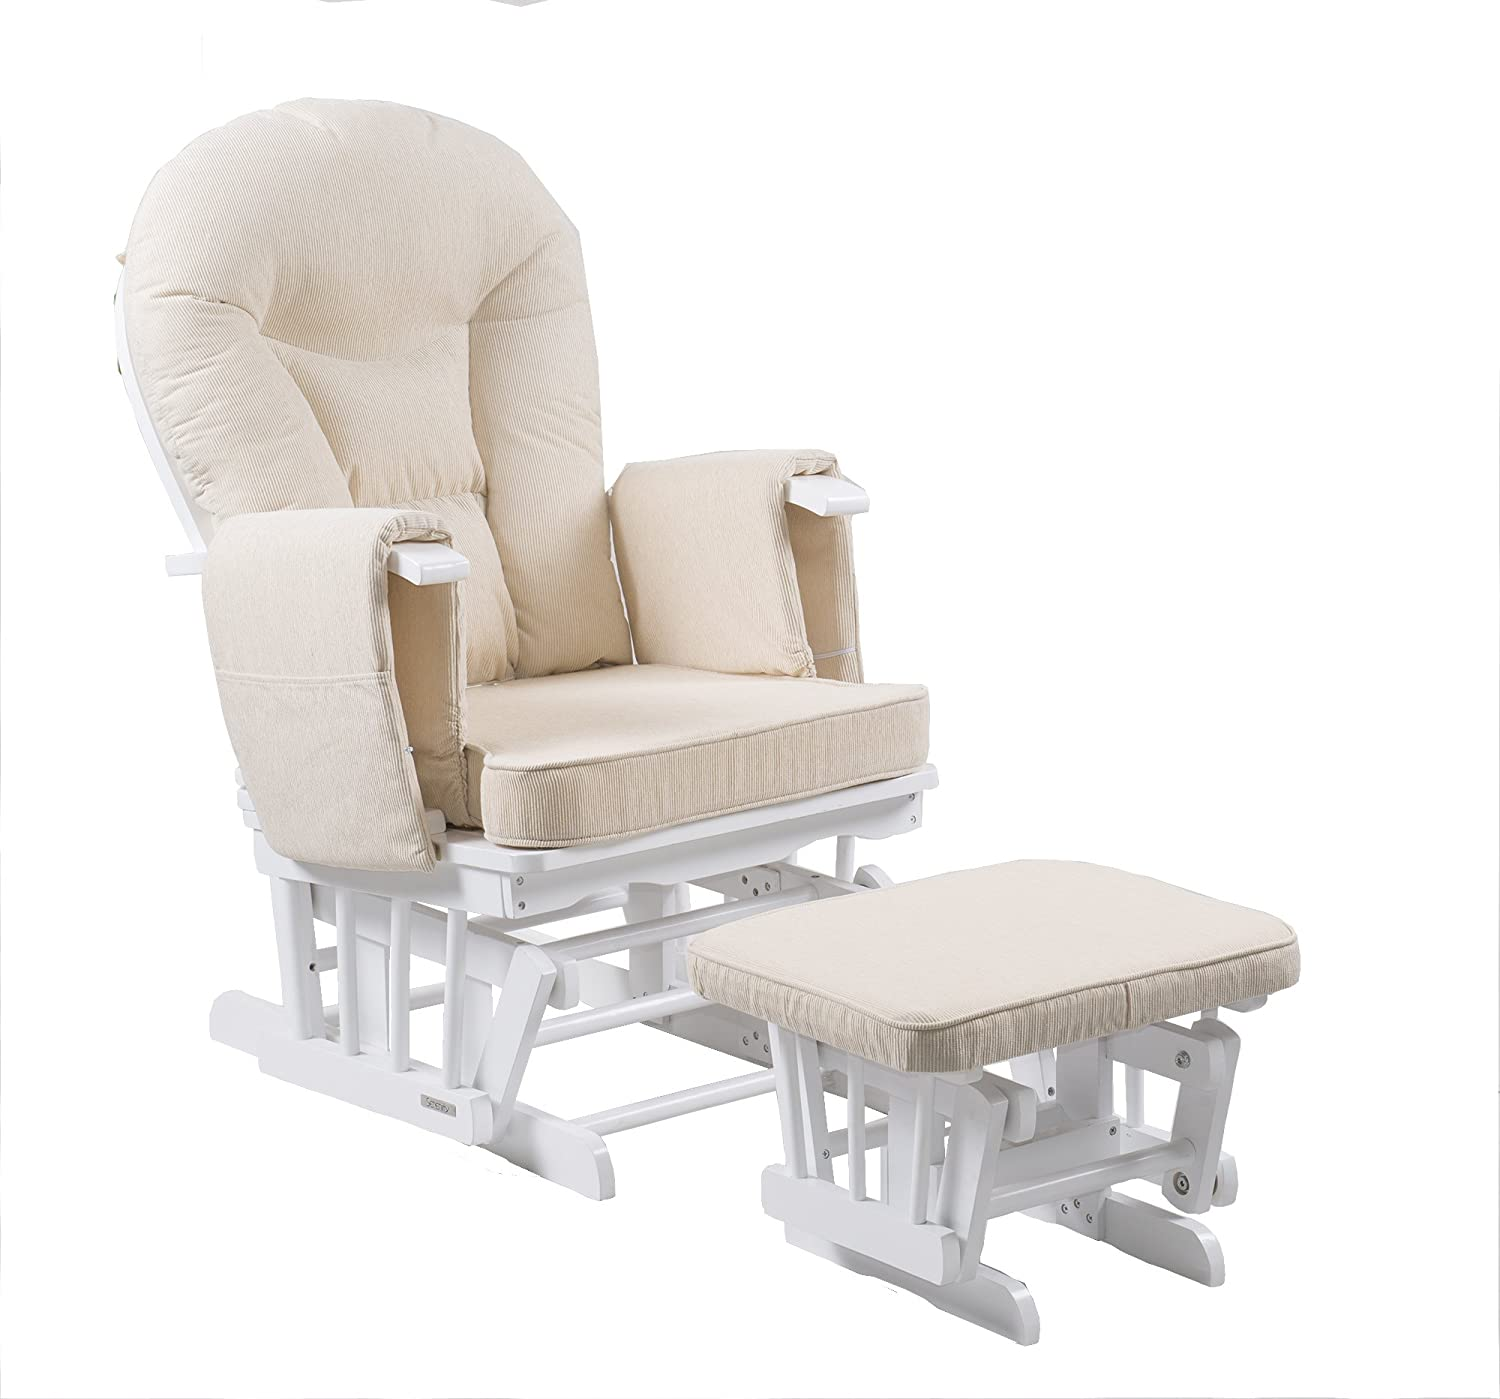 Serenity Nursing Glider maternity chair white with footstool … (White) Kidzmotion SERENITY-WHITE